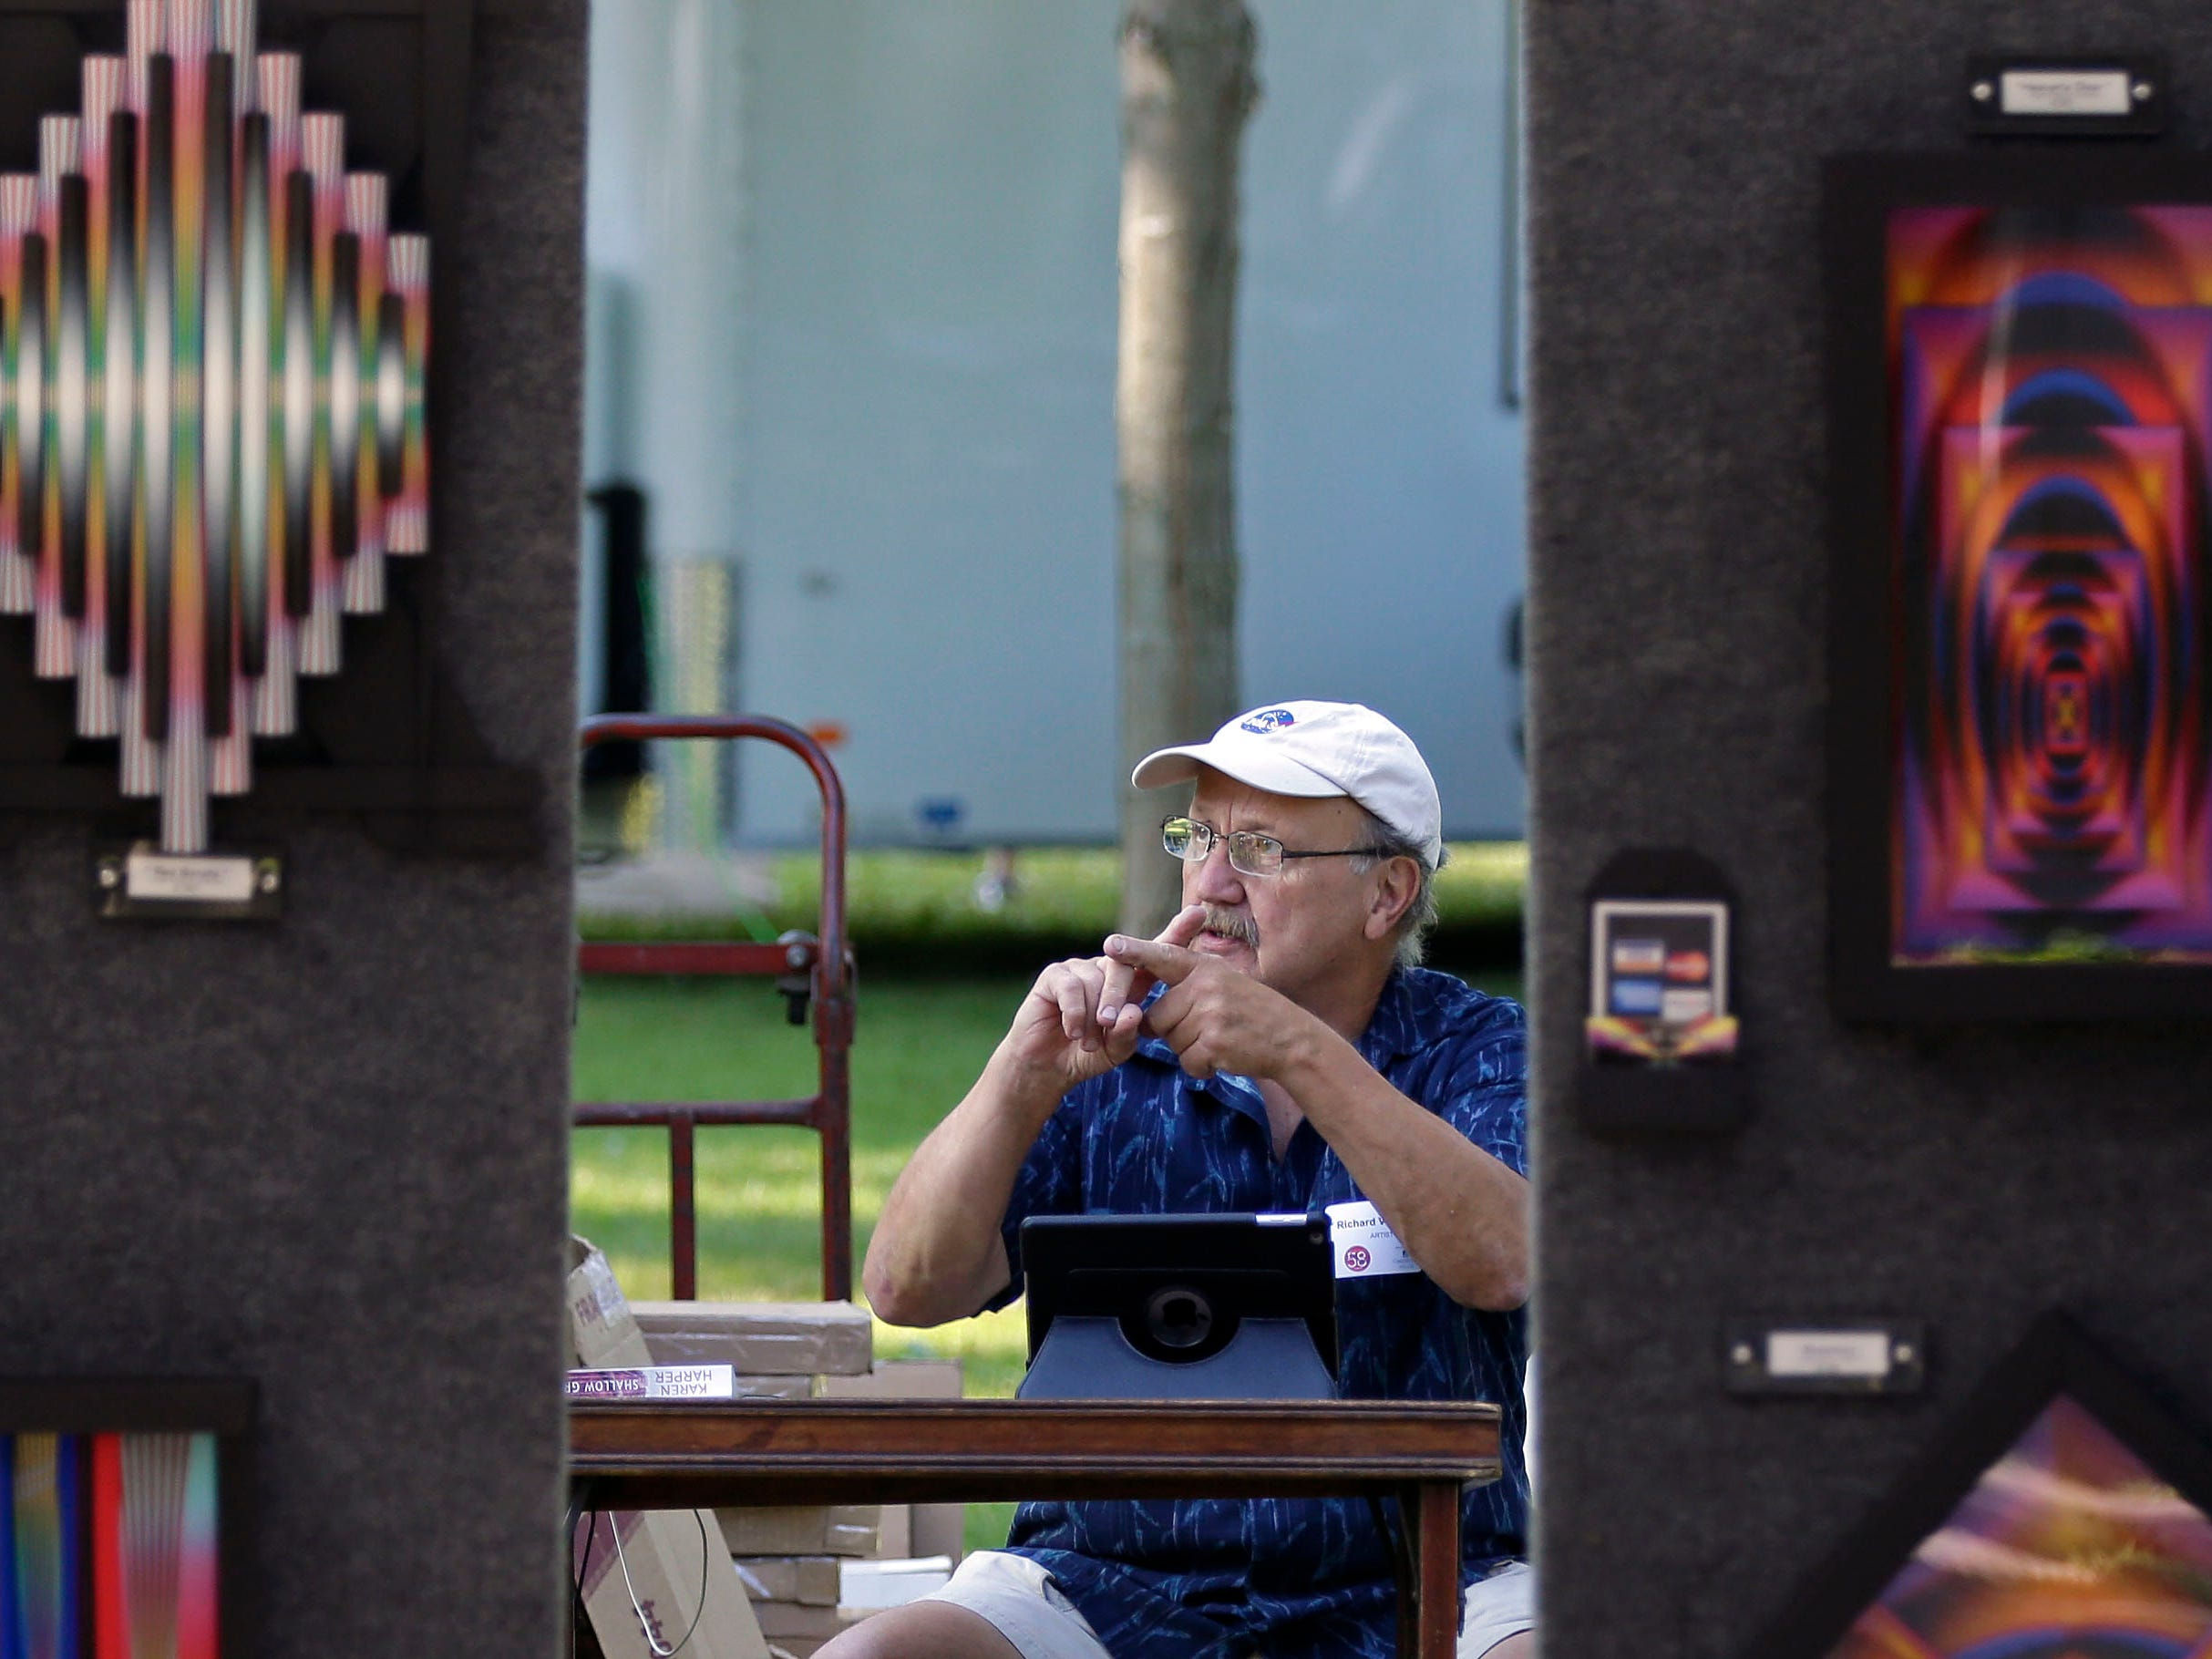 An artist works at his iPad before the 58th annual Art at the Park takes place Sunday, July 29, 2018, at City Park in Appleton, Wis.Ron Page/USA TODAY NETWORK-Wisconsin